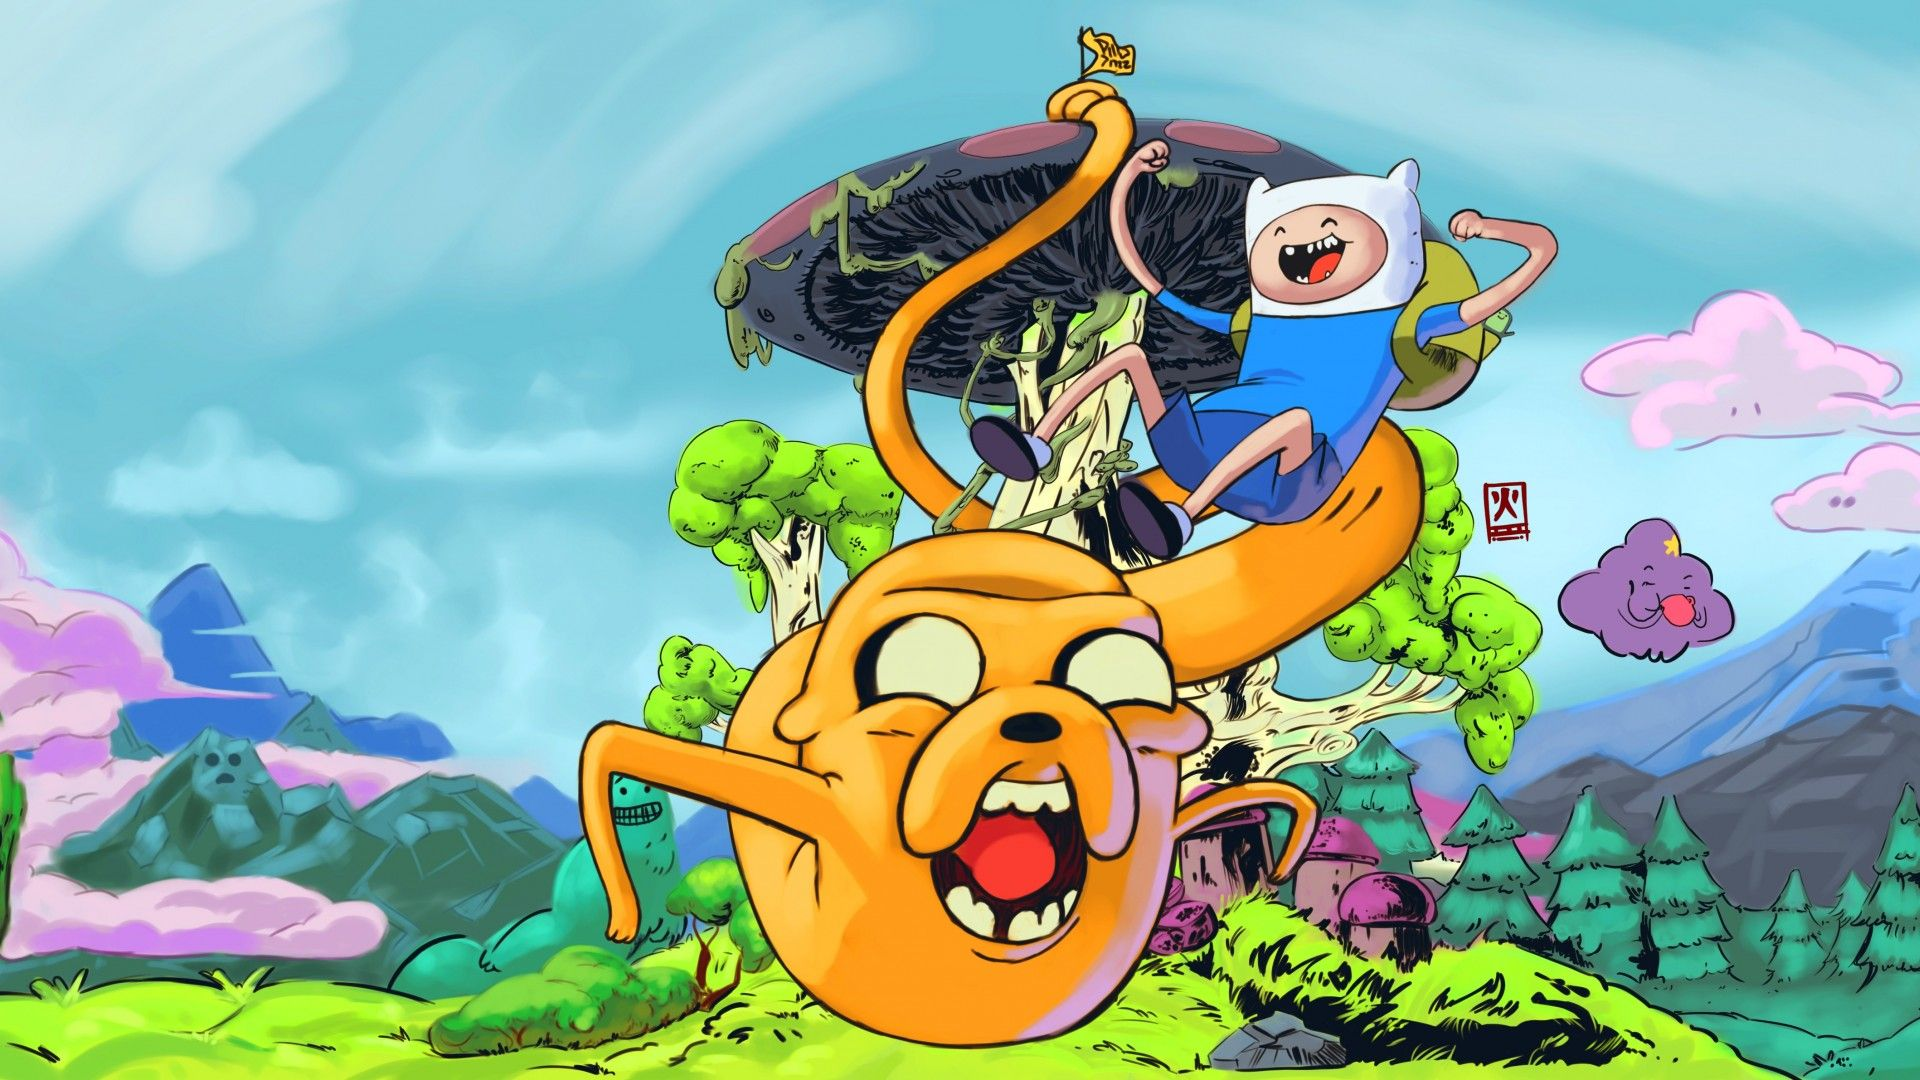 Adventure Time Wallpapers Hd Wallpaper 1920 1080 Adventure Time Wallpaper 33 Wallpapers Adorab Adventure Time Wallpaper Adventure Time Art Adventure Time